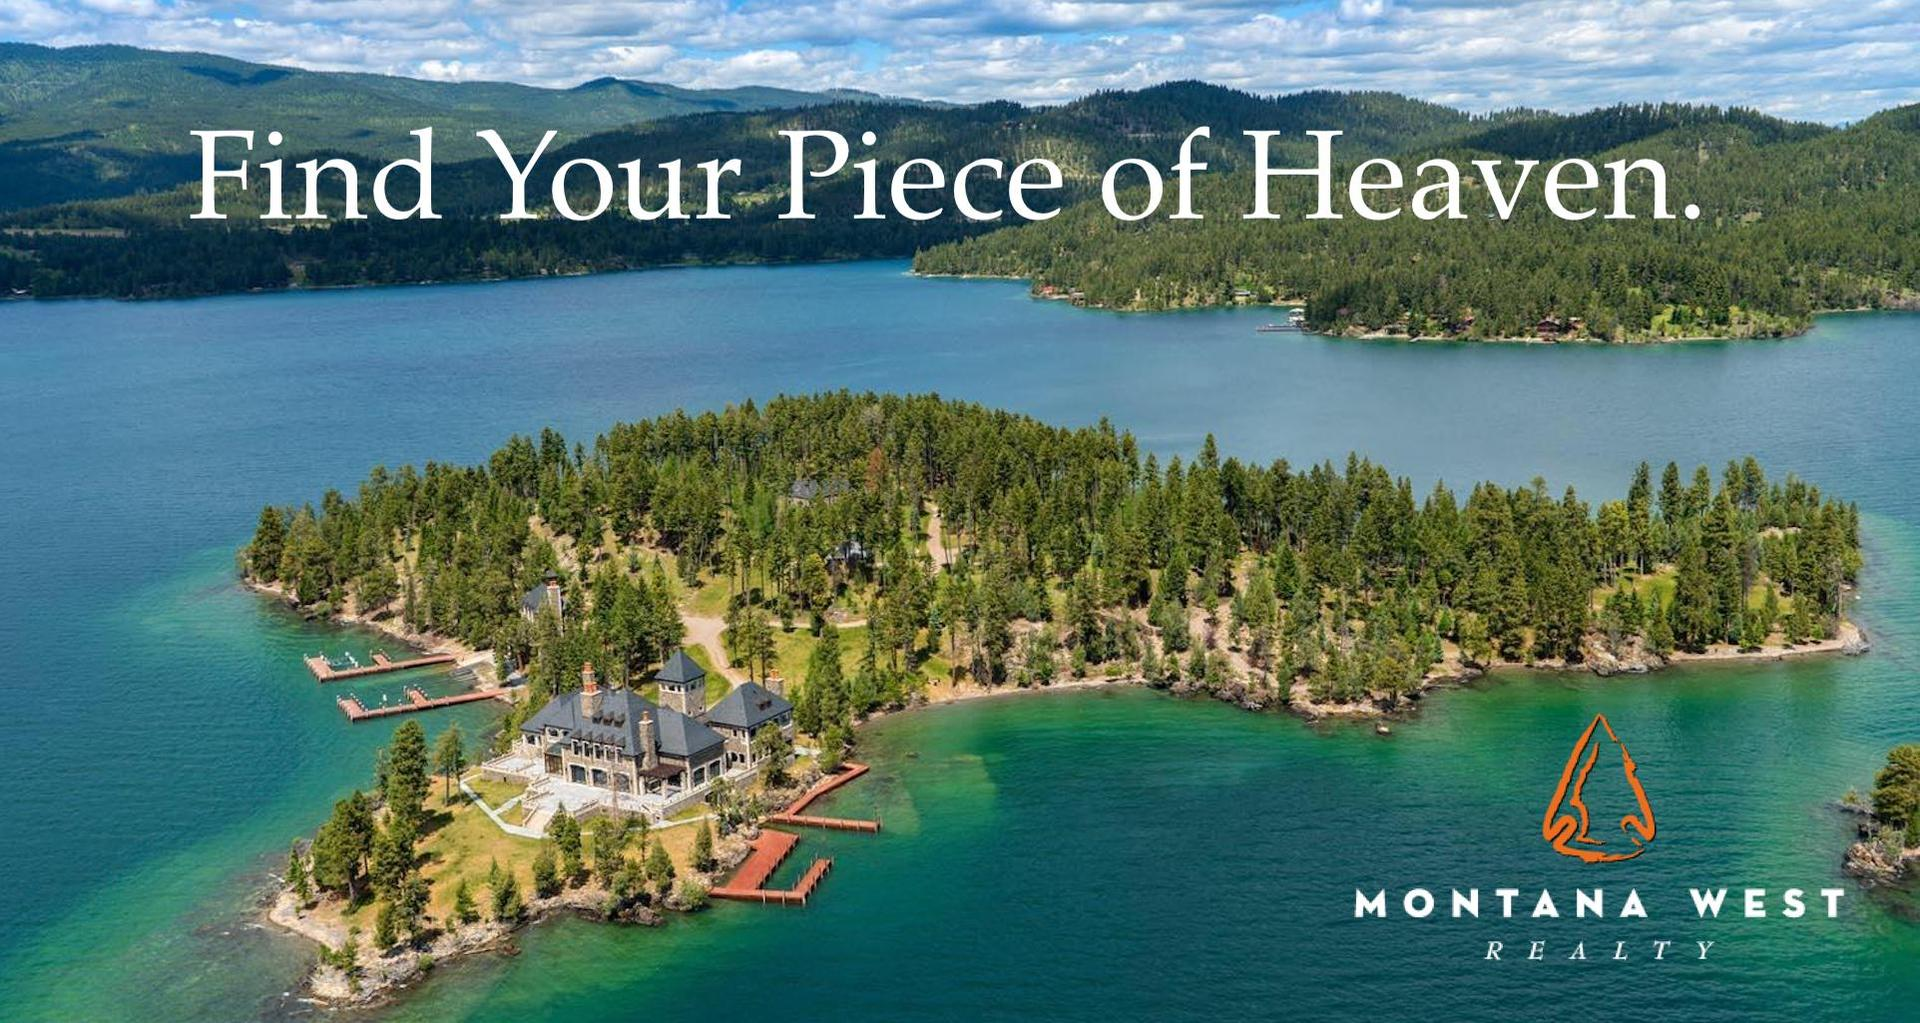 Montana West Realty